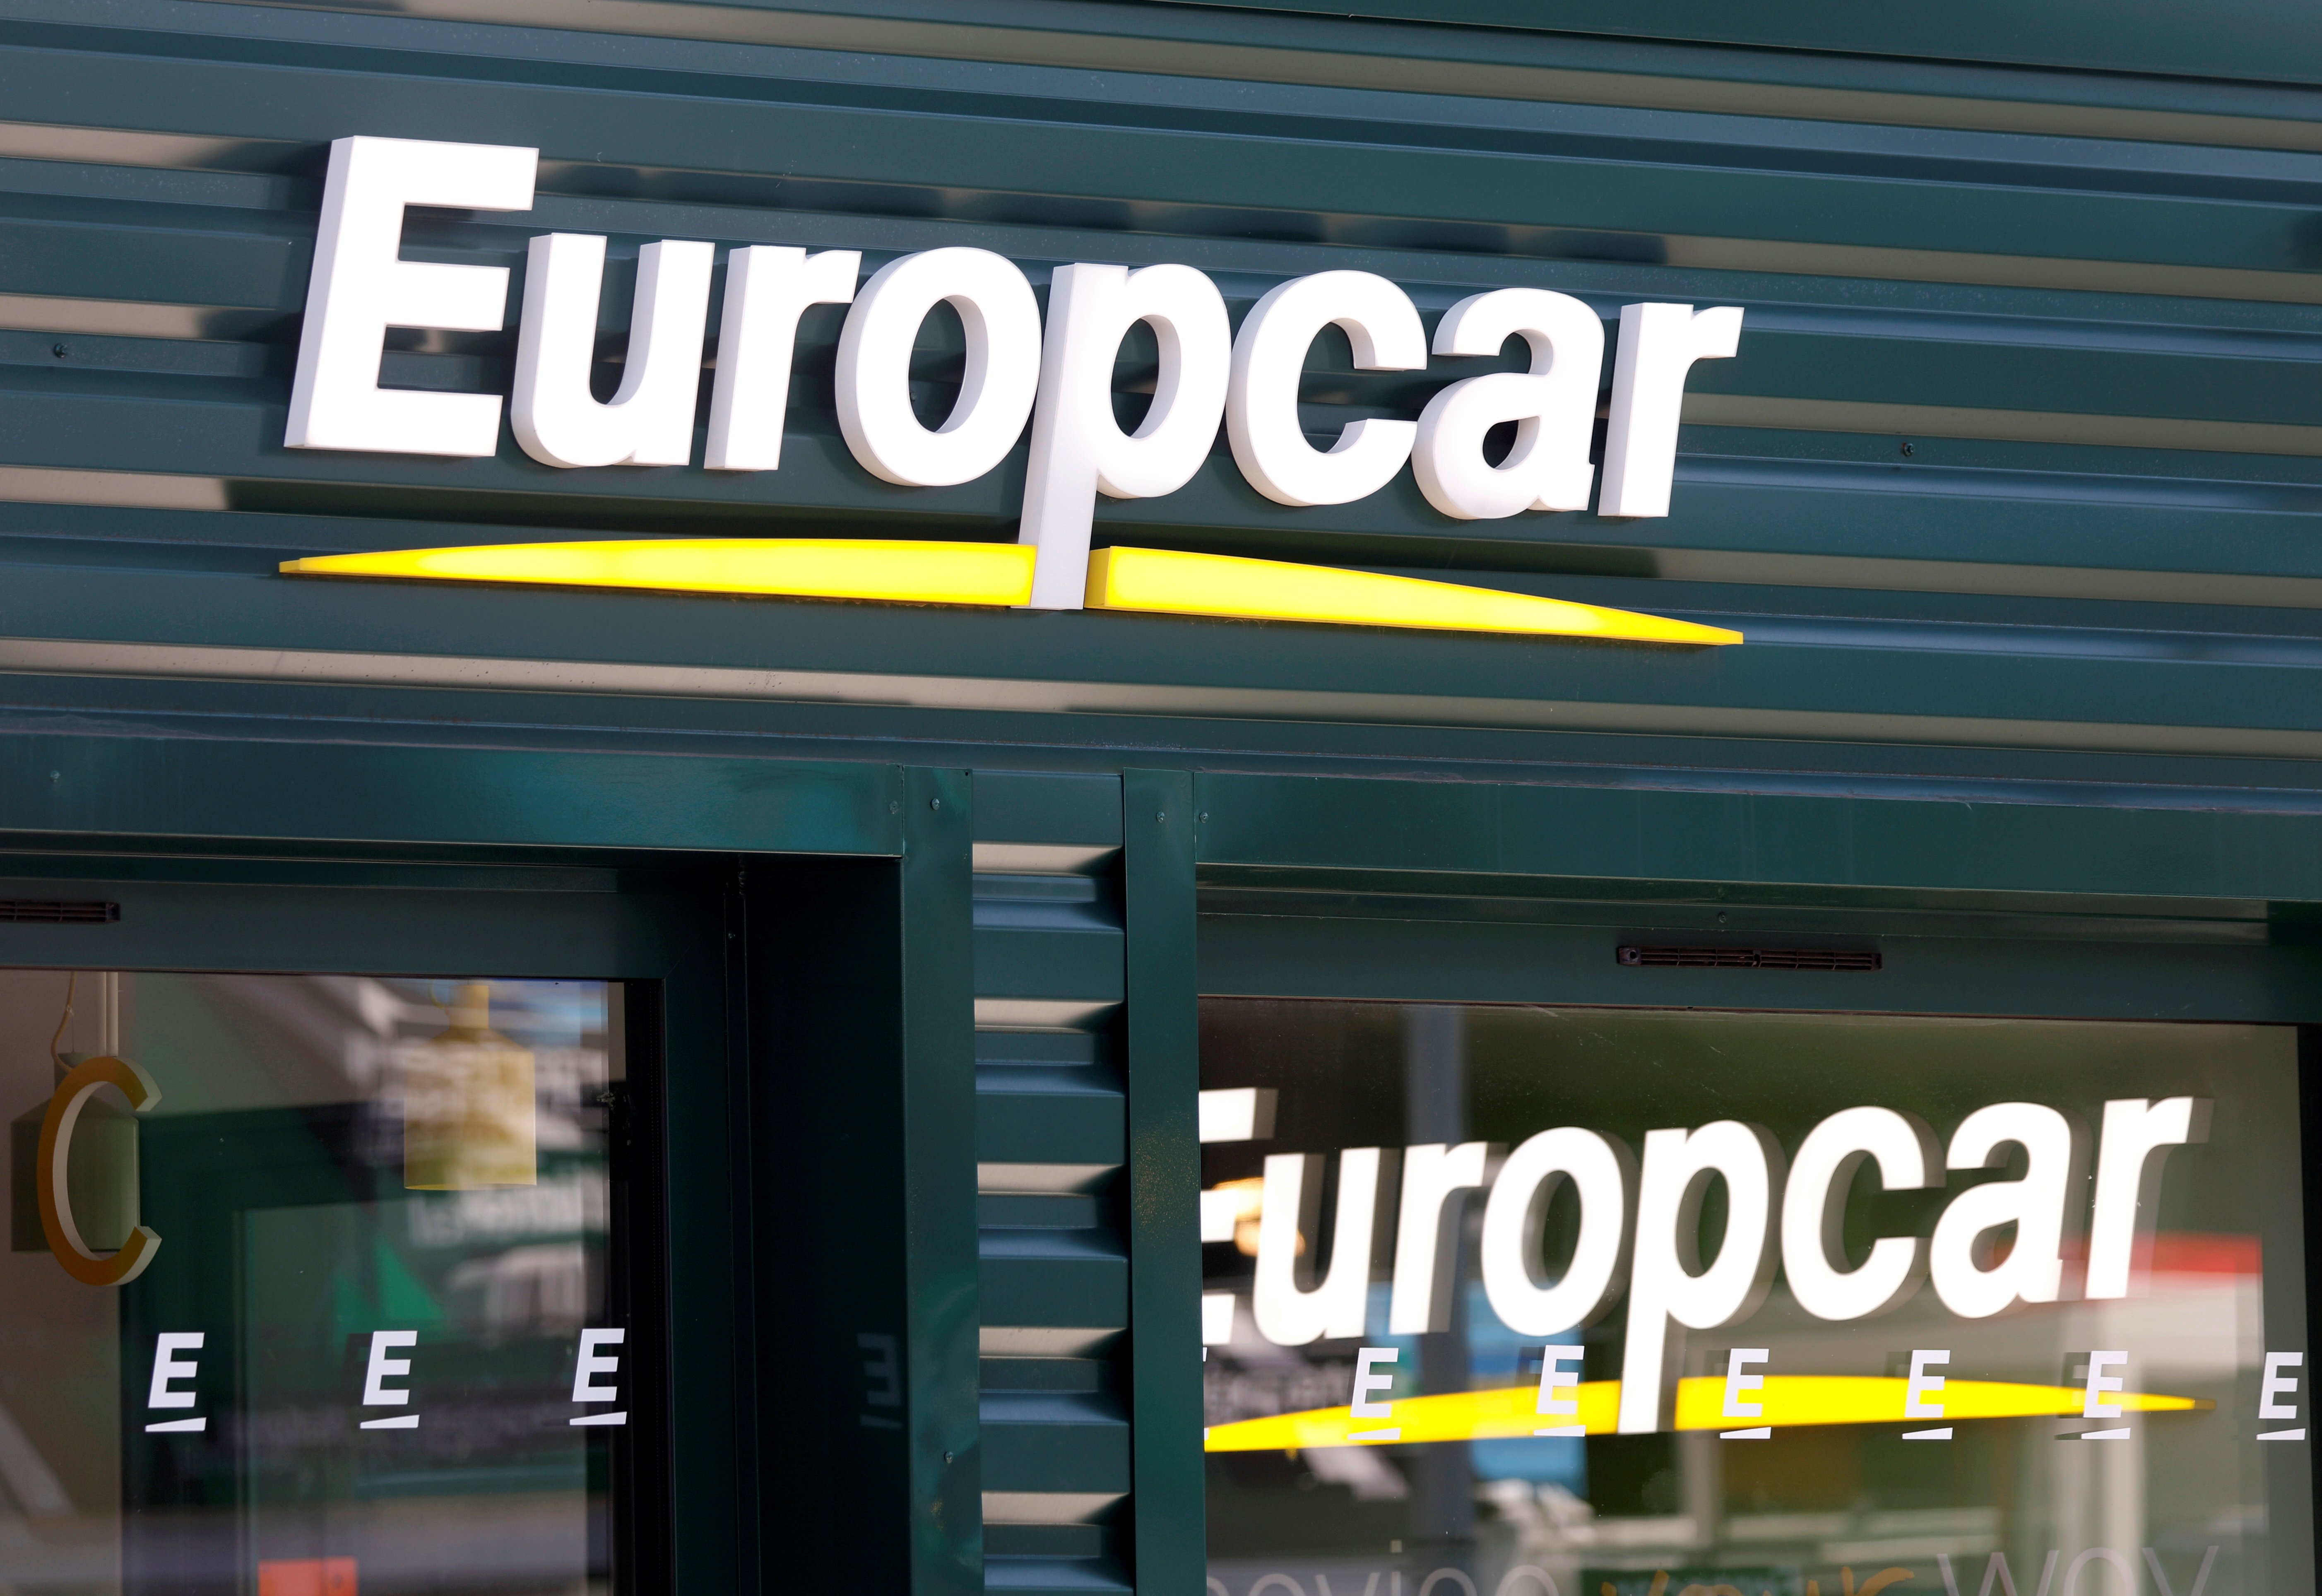 The logo of car rental company Europcar is seen outside Paris Charles de Gaulle airport in Roissy-en-France during the outbreak of the coronavirus disease (COVID-19) in France May 19, 2020.  REUTERS/Charles Platiau/File Photo